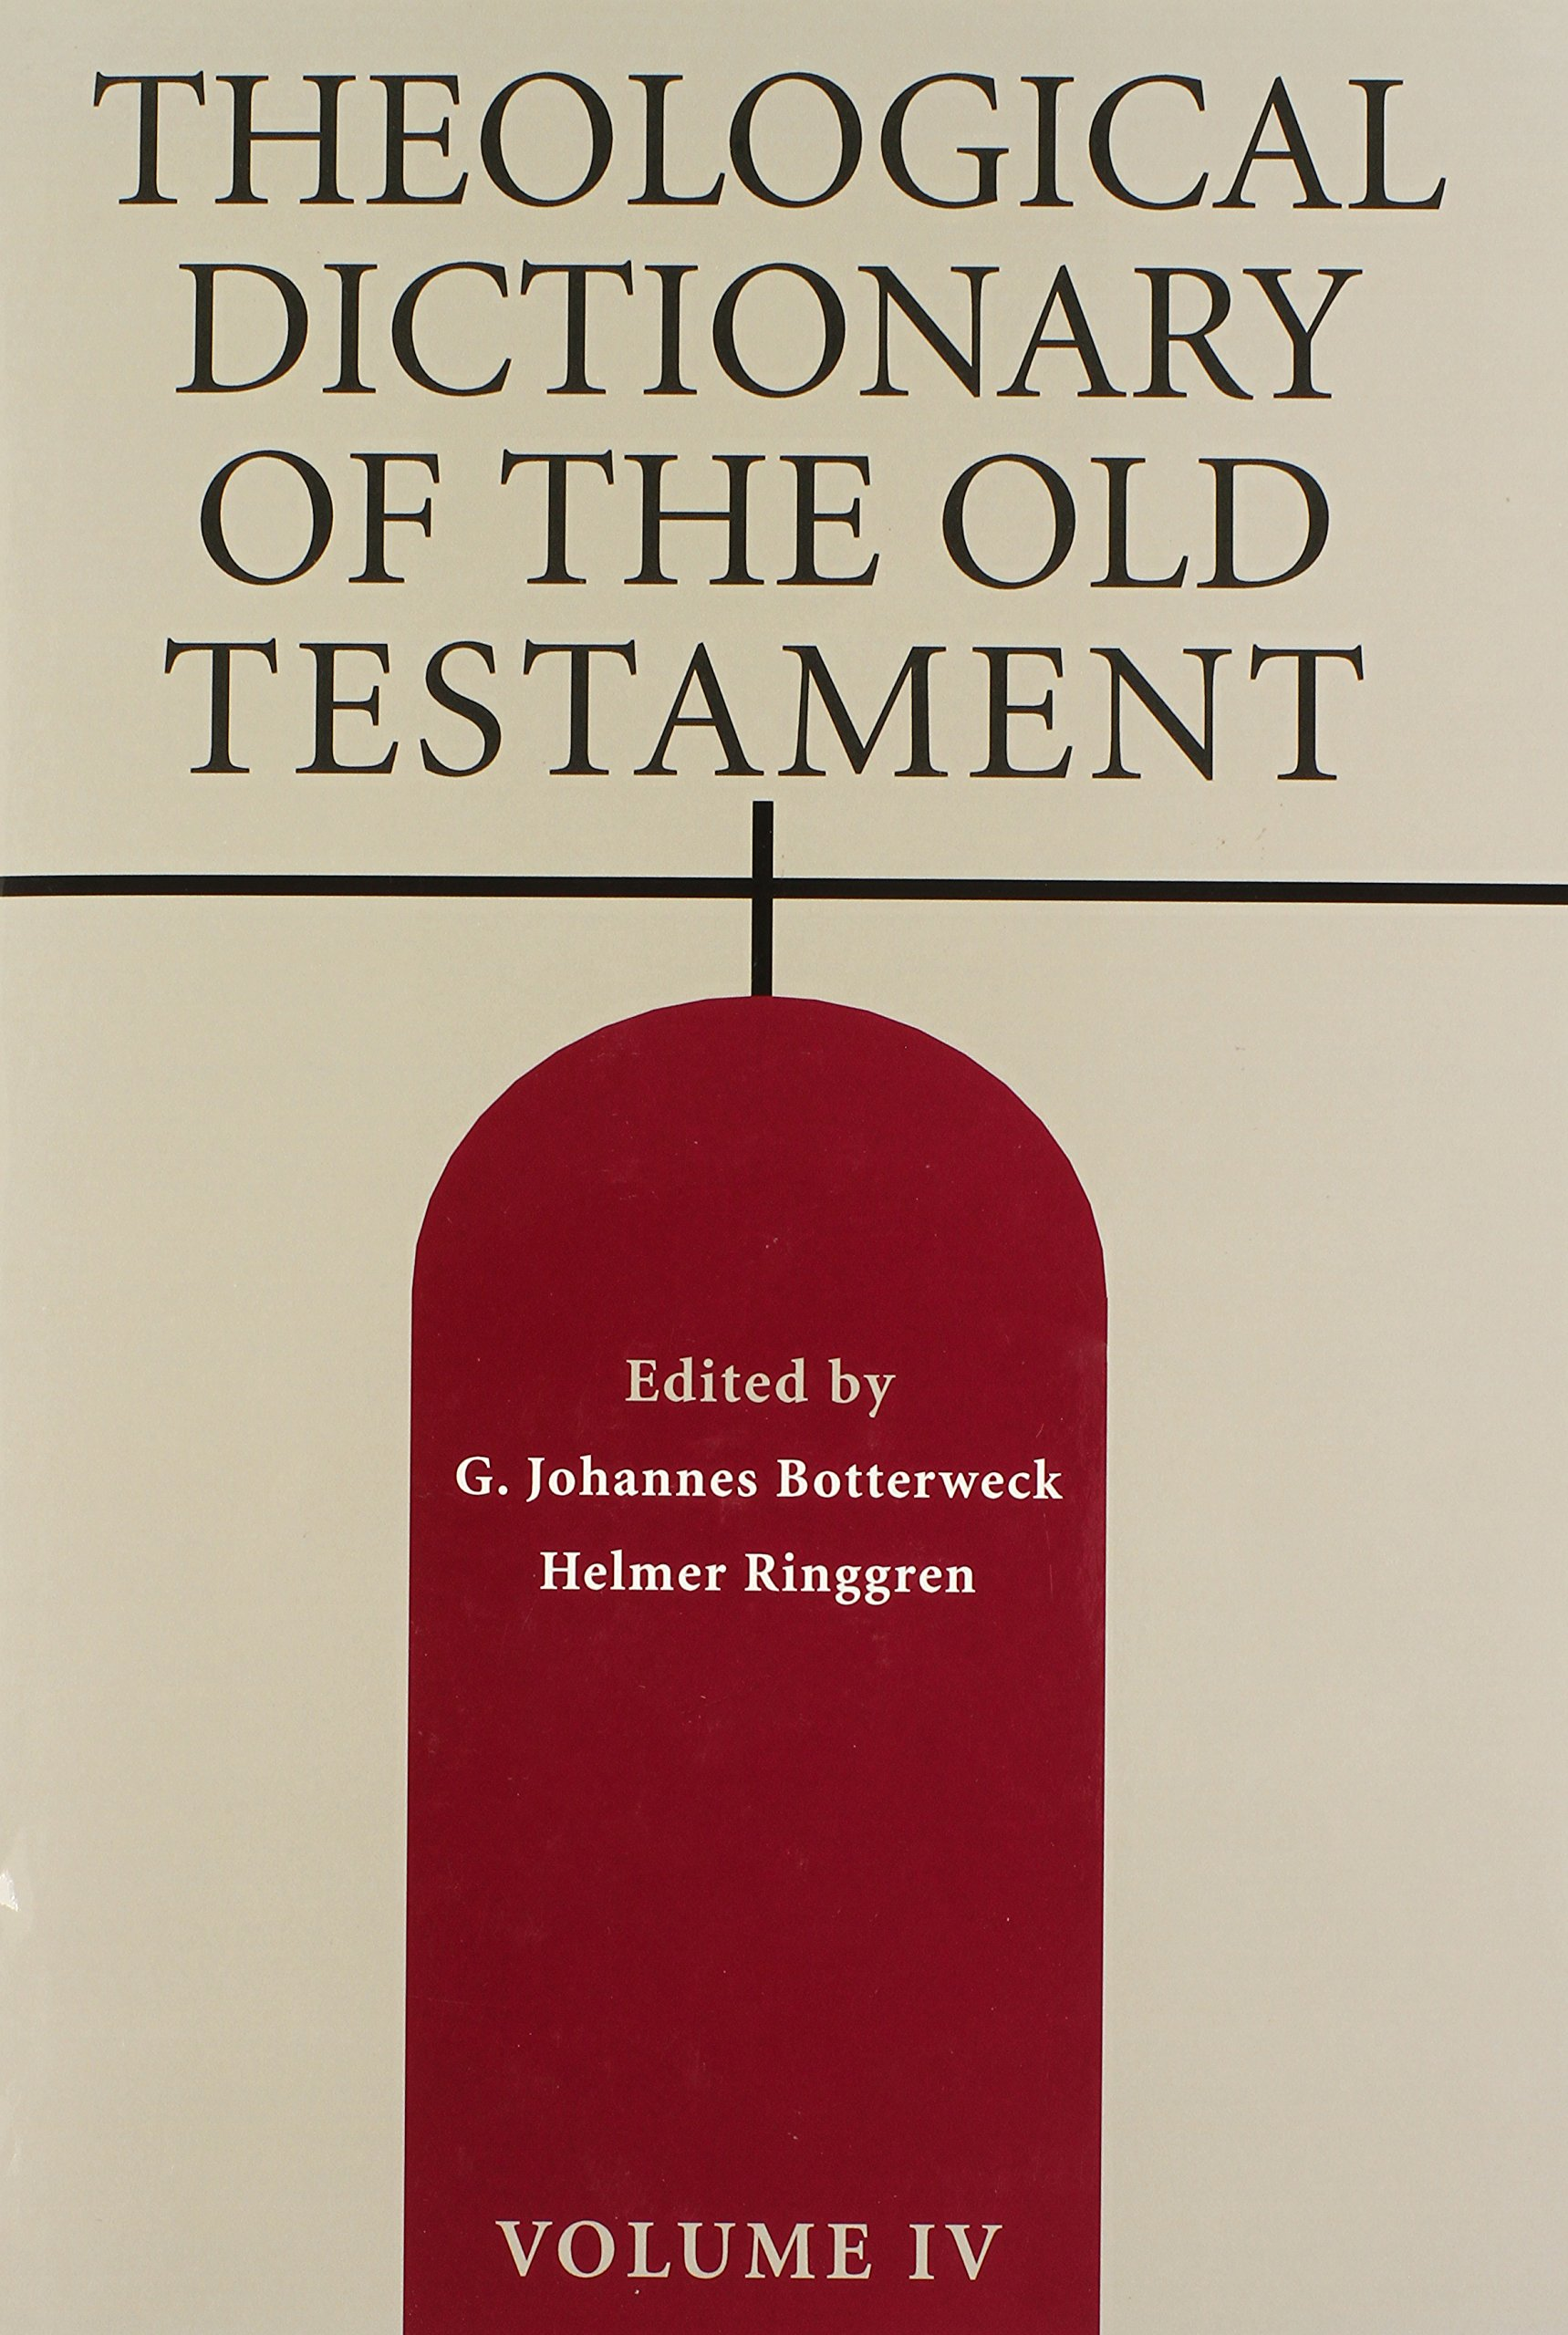 Theological Dictionary of the Old Testament, Vol. 4